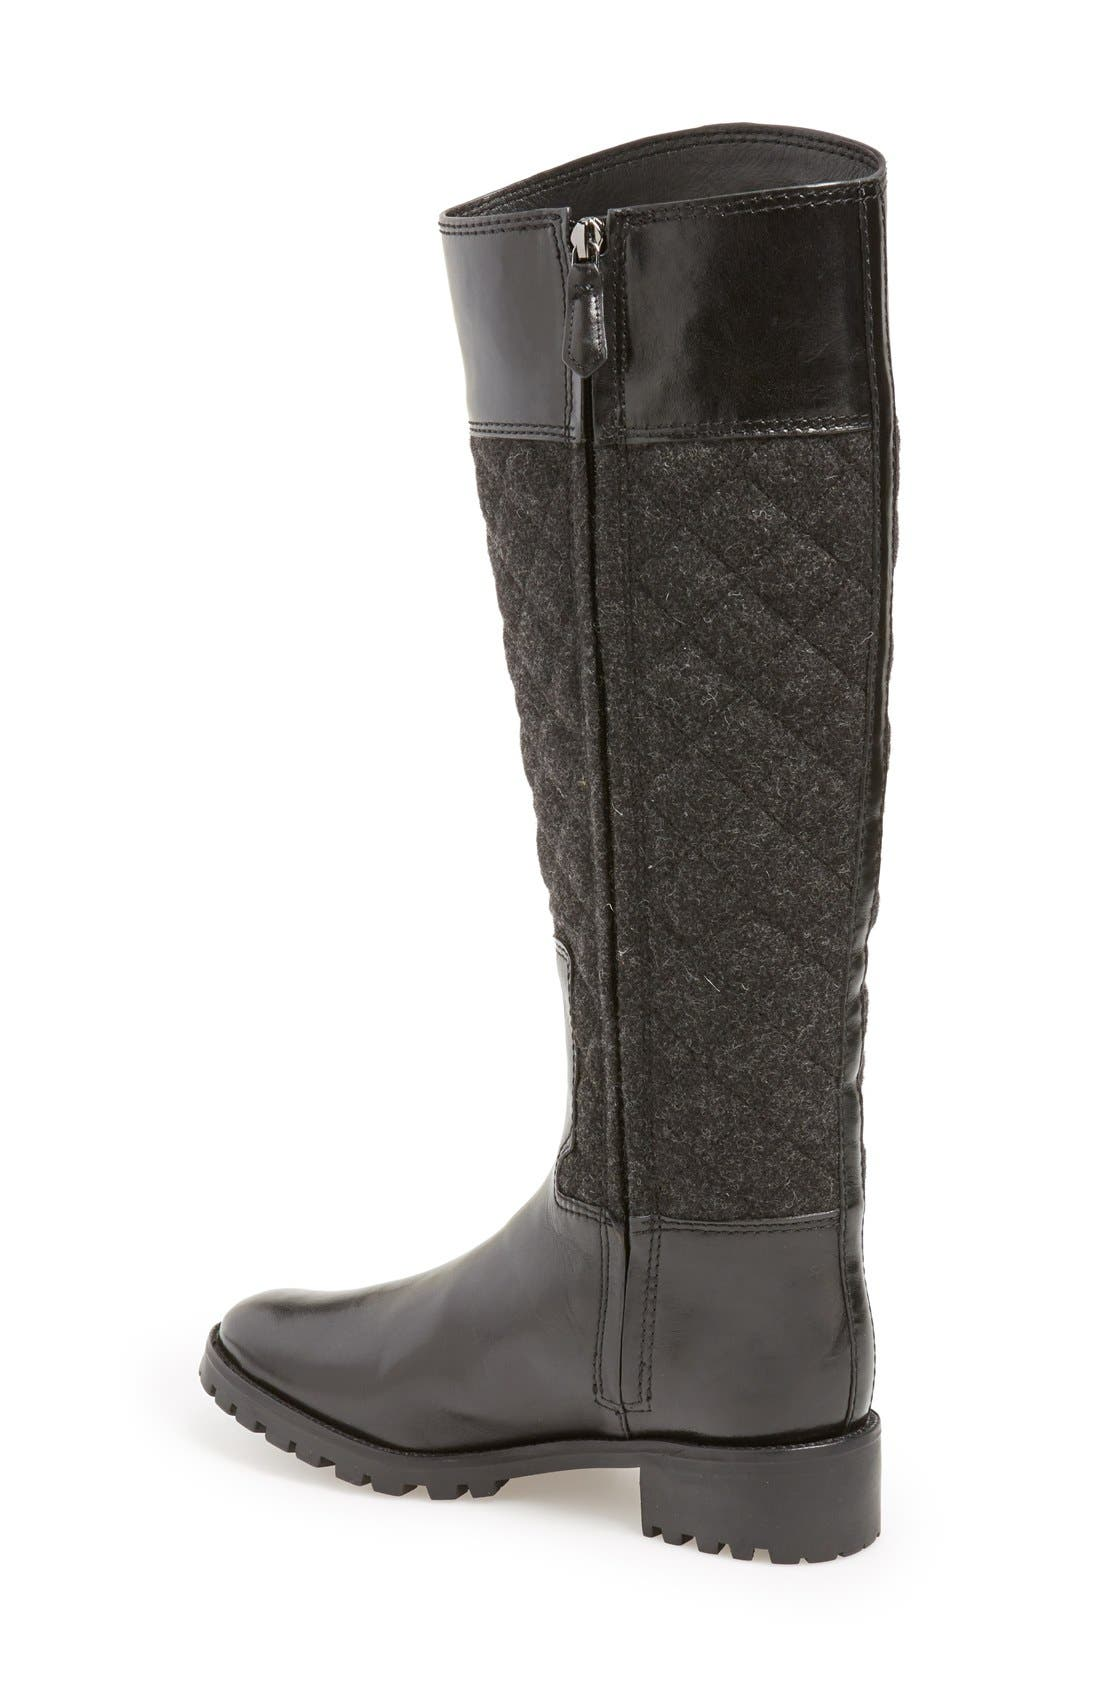 Alternate Image 2  - Tory Burch 'Melinda' Riding Boot (Women) (Nordstrom Exclusive)